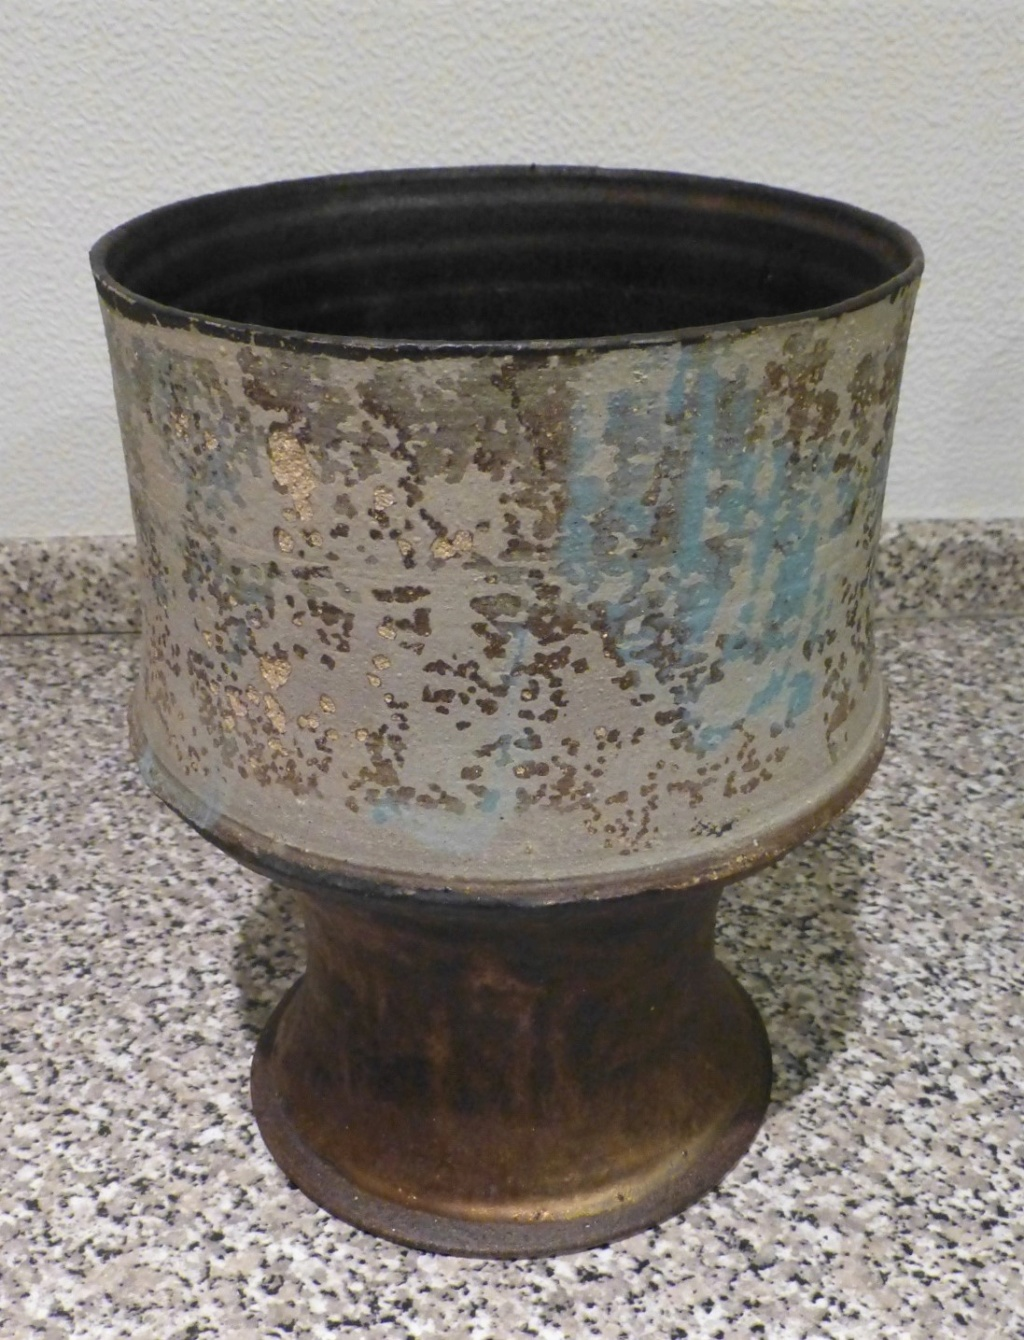 Speckled Pedestal bowl with Copper Lustre RMG?? P1130610